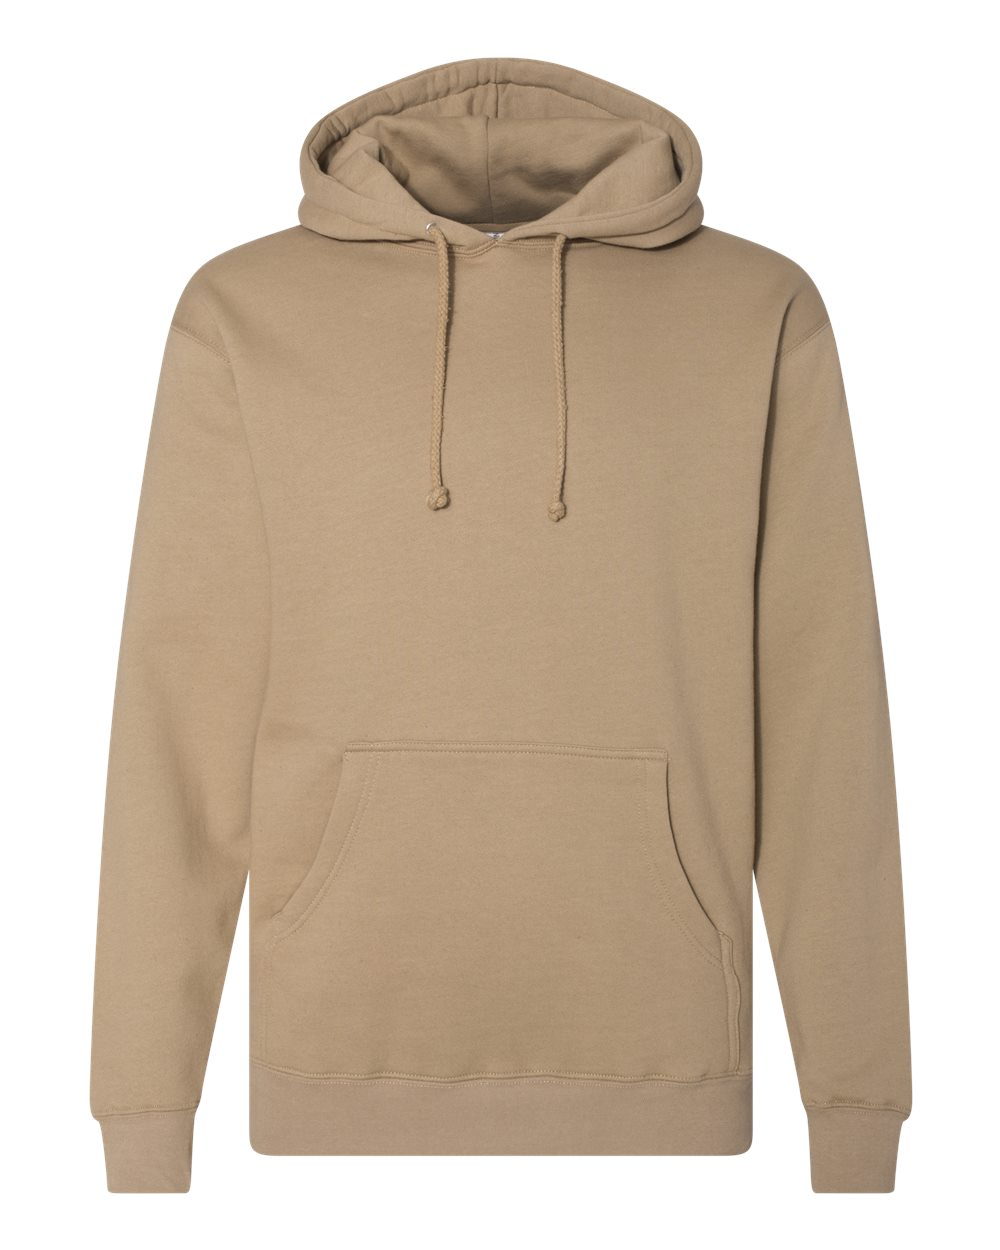 Independent-Trading-Co-Mens-Hooded-Pullover-Sweatshirt-IND4000-up-to-3XL miniature 75